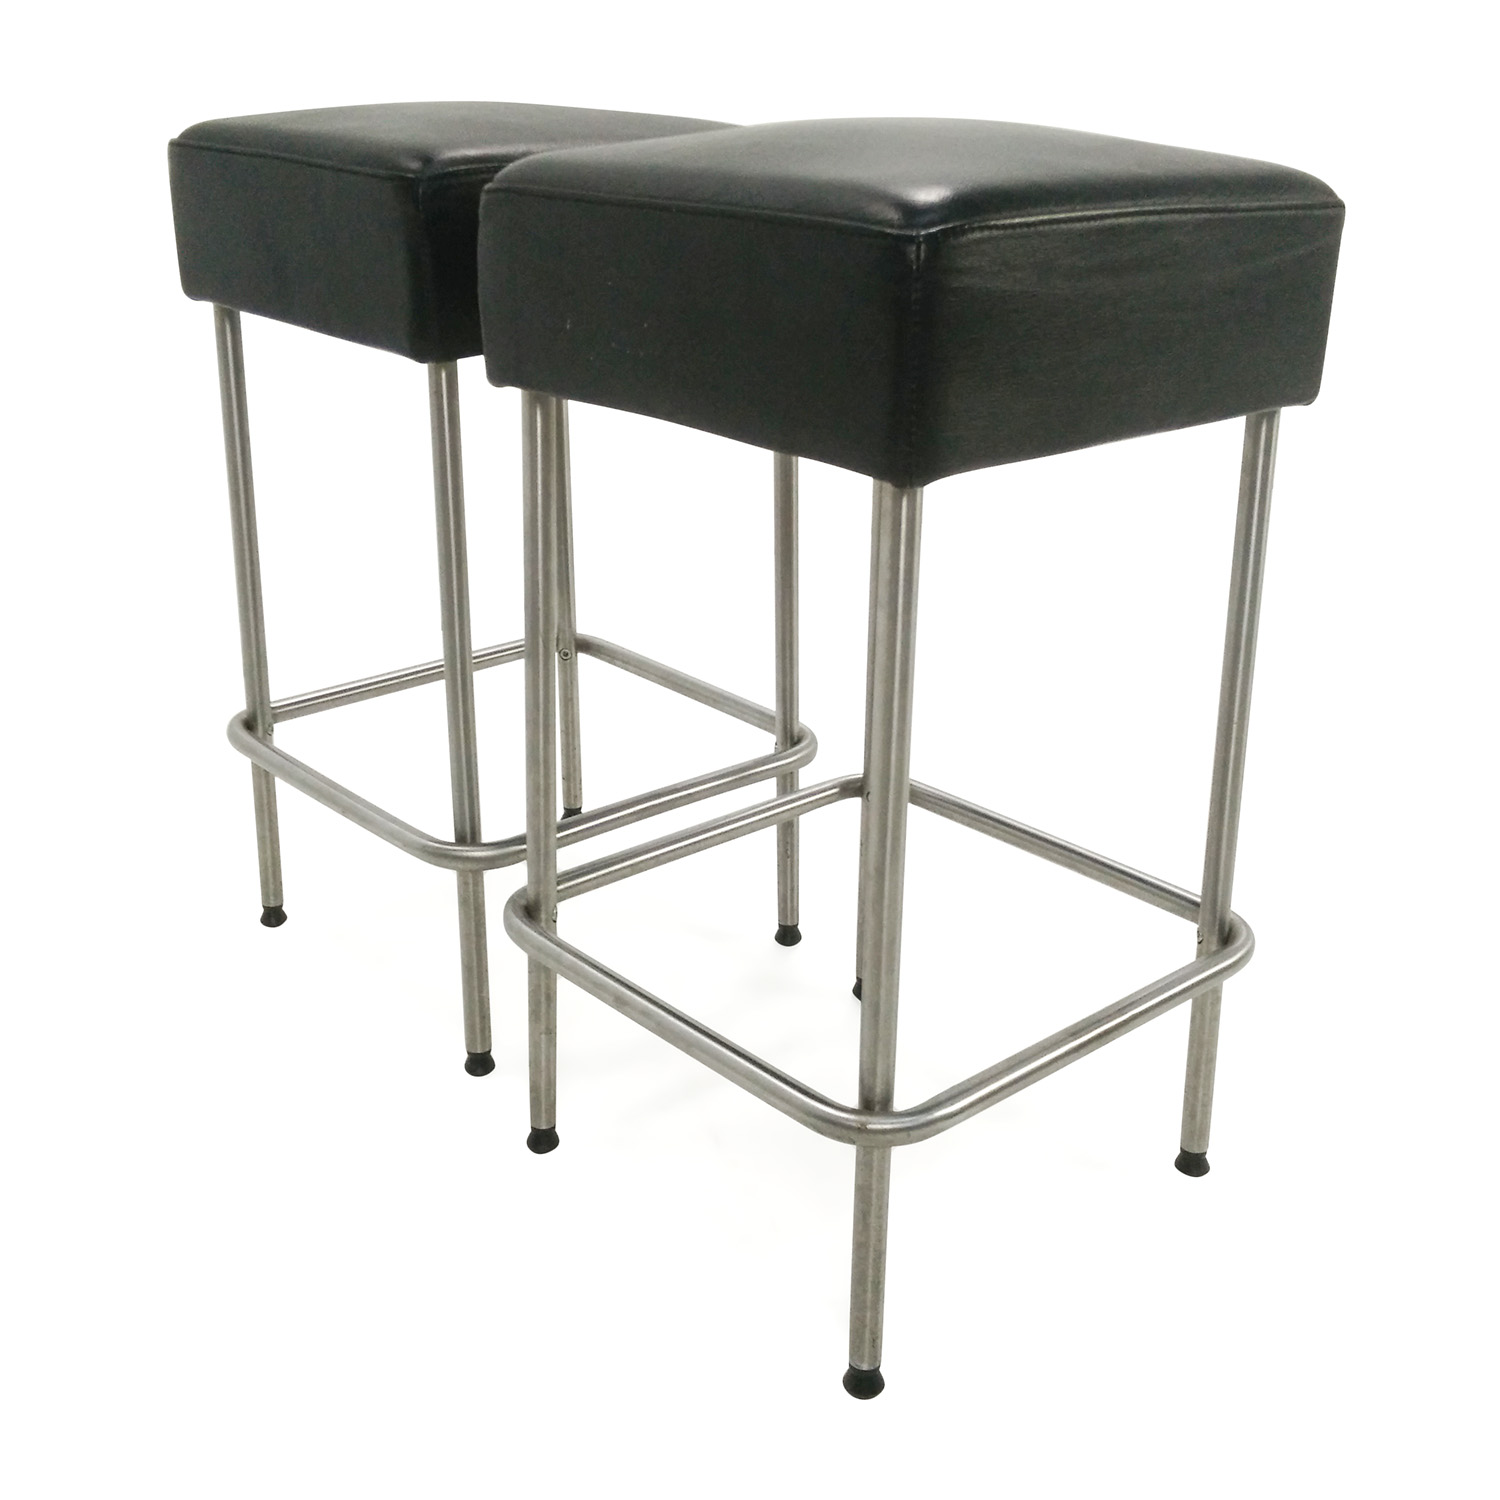 Black Leather Chairs Ikea 71 Off Ikea Ikea Black Faux Leather Bar Stools Chairs